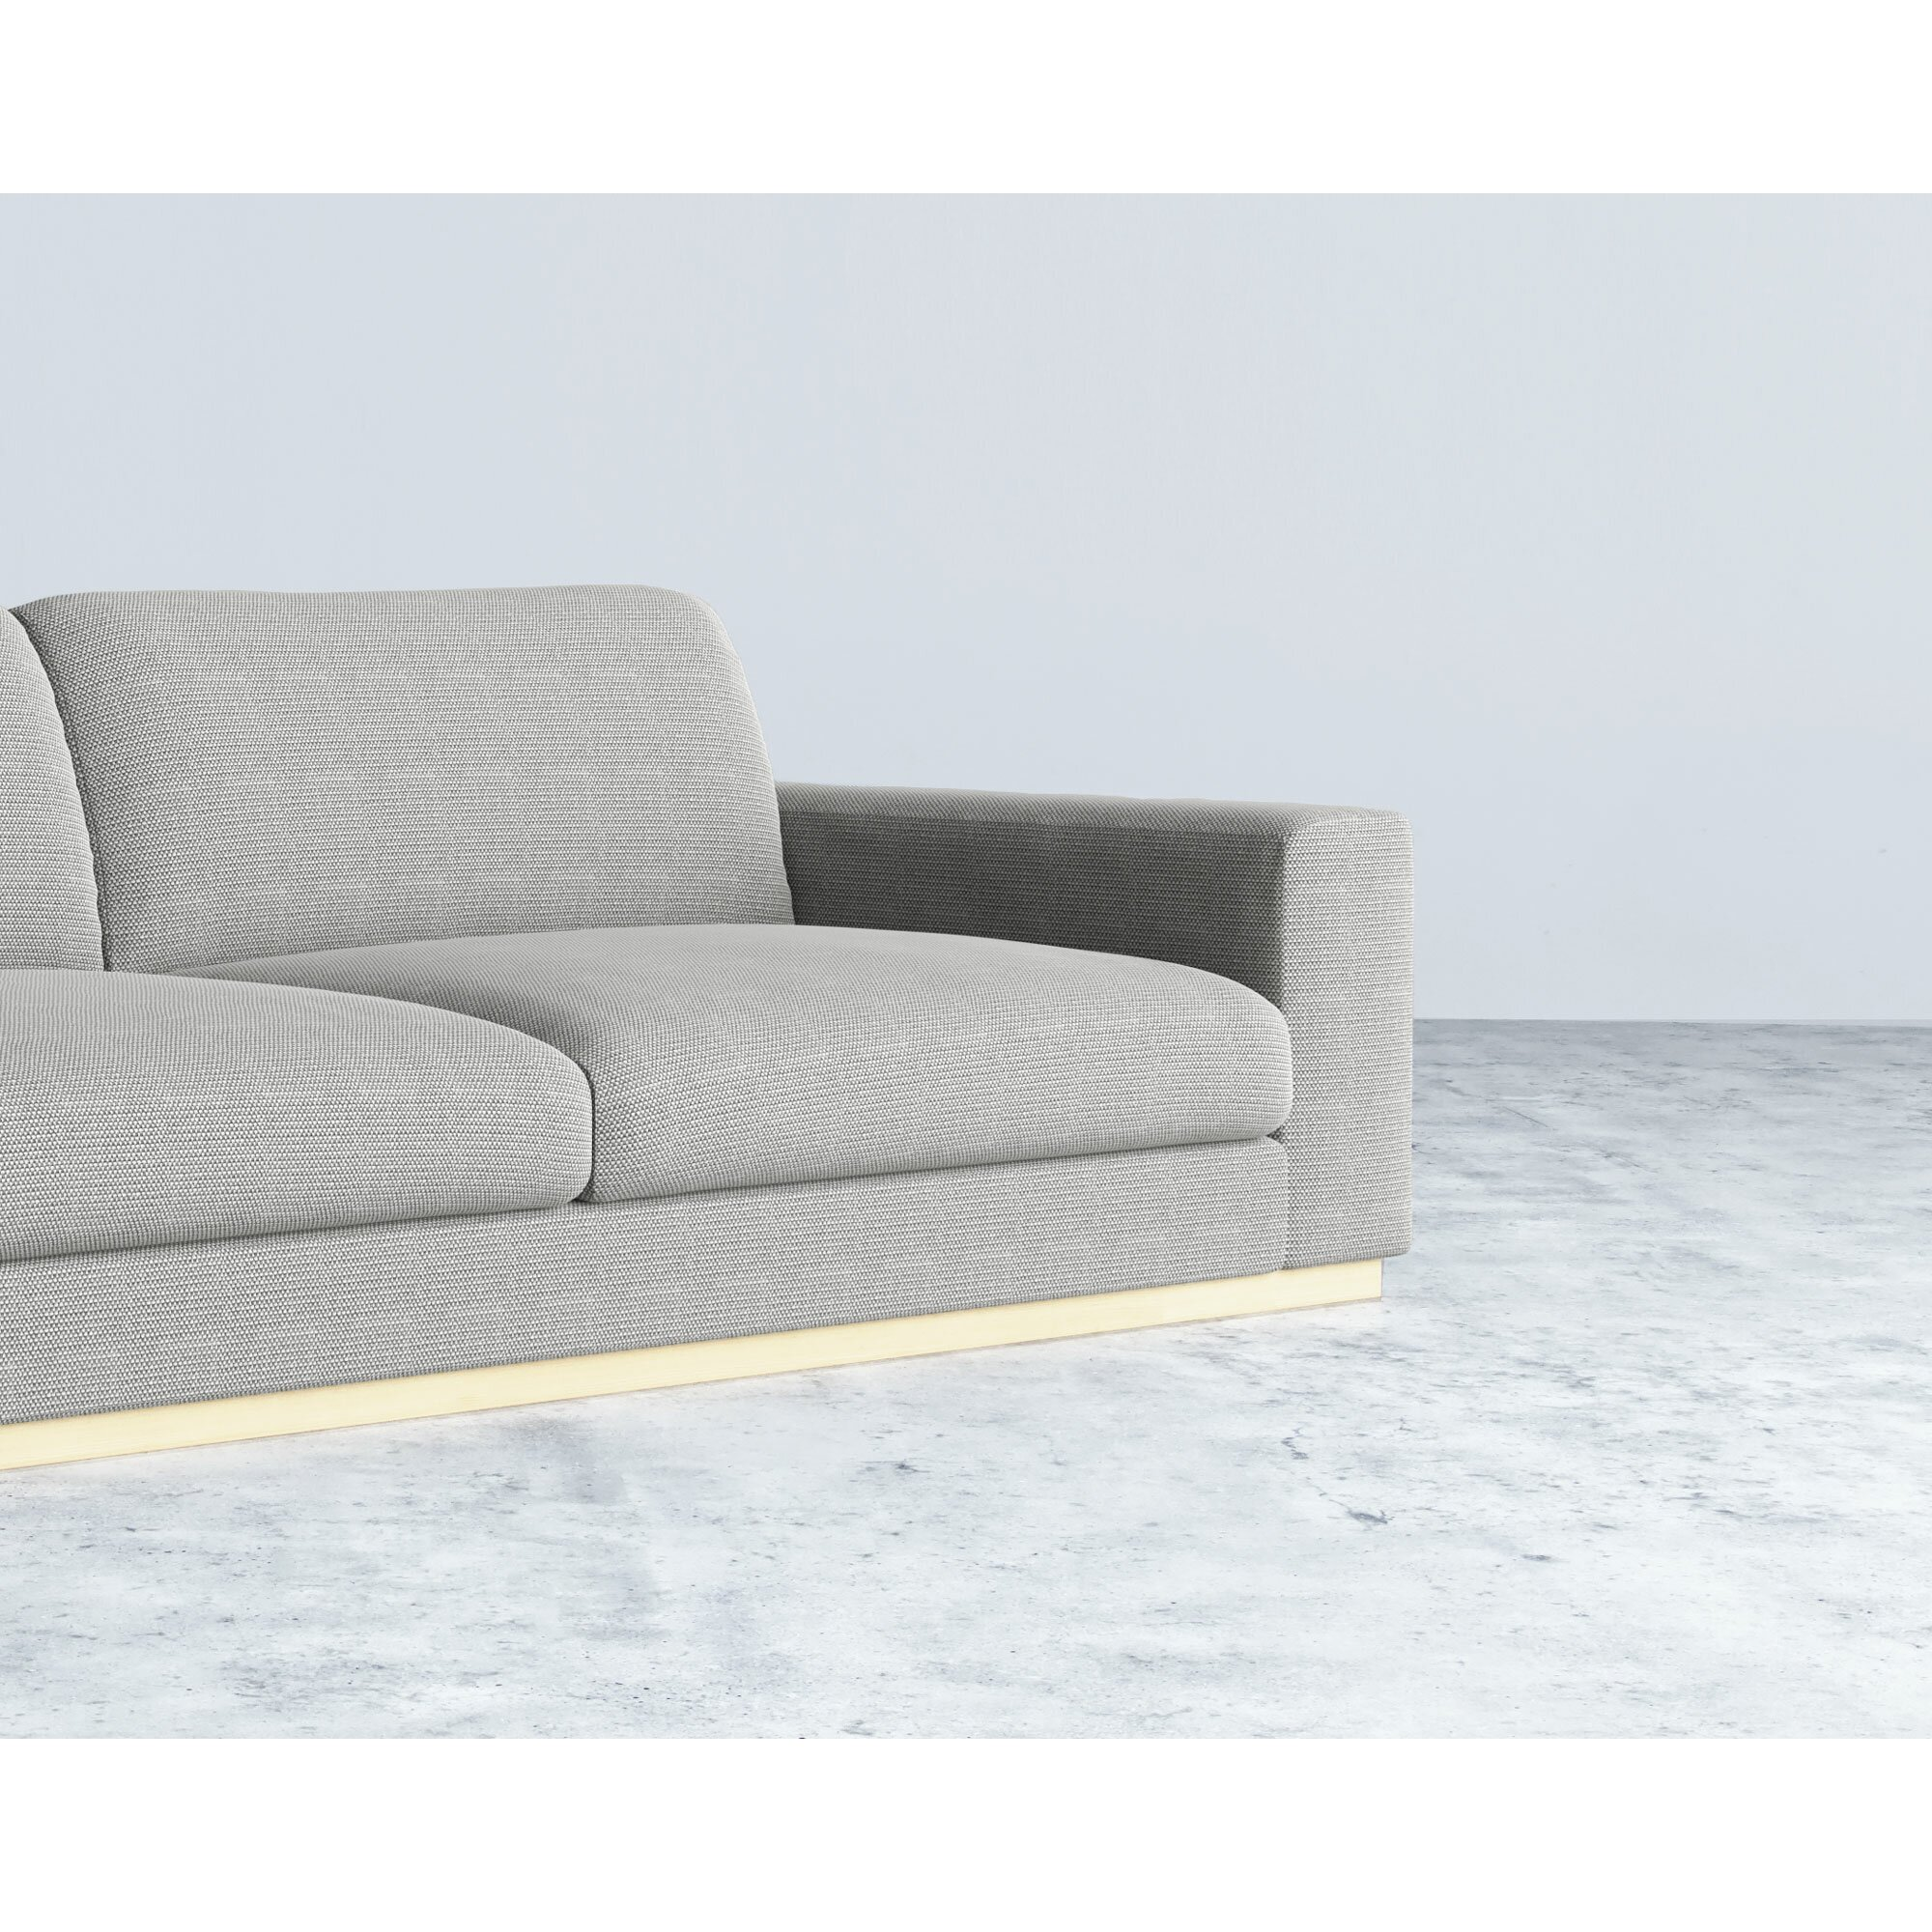 Kohler Furniture Sofa